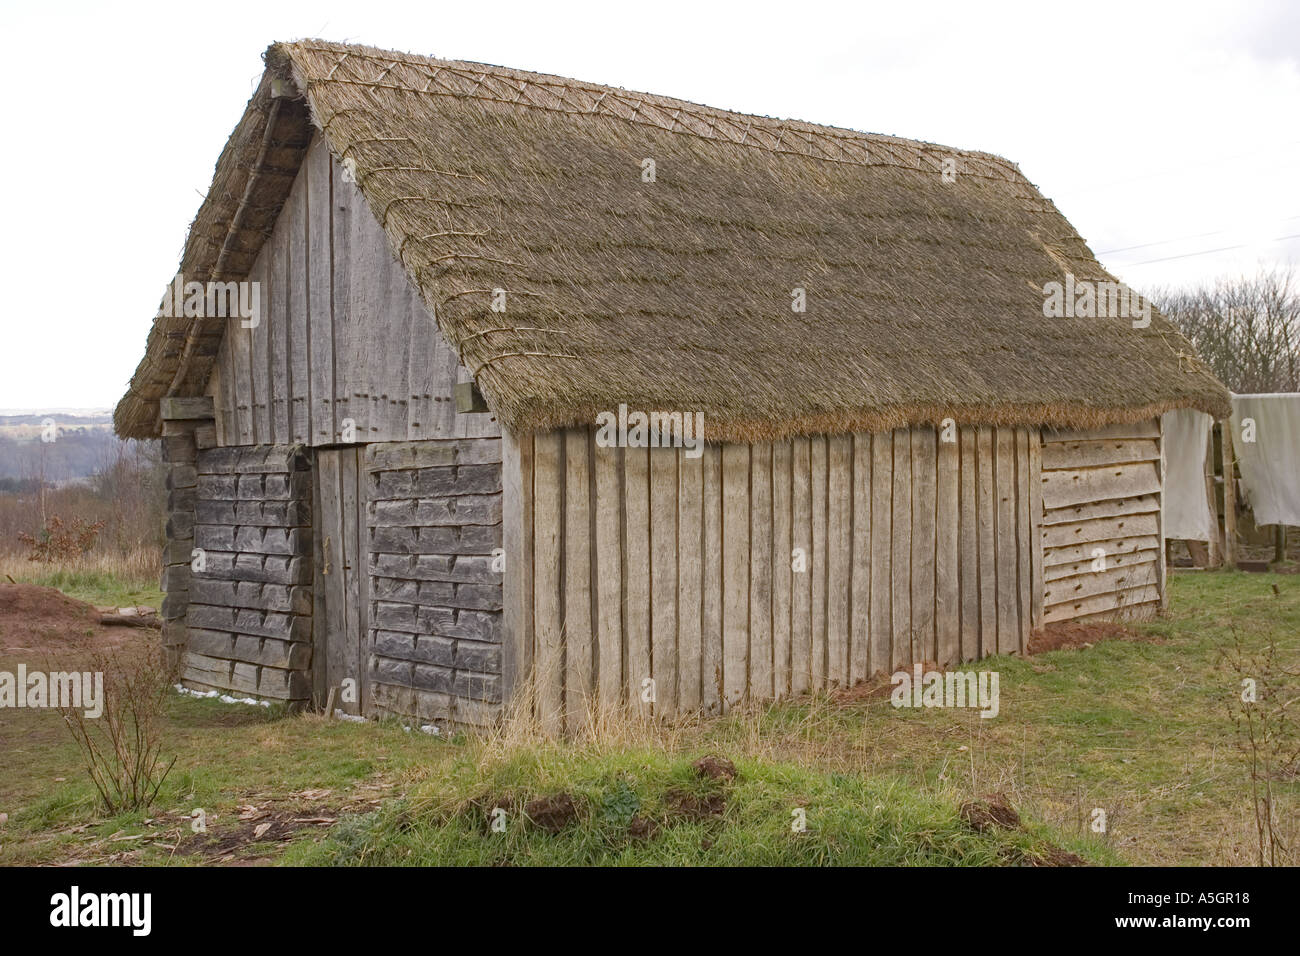 Anglo Saxon House Built Of Timber With Thatched Roof And